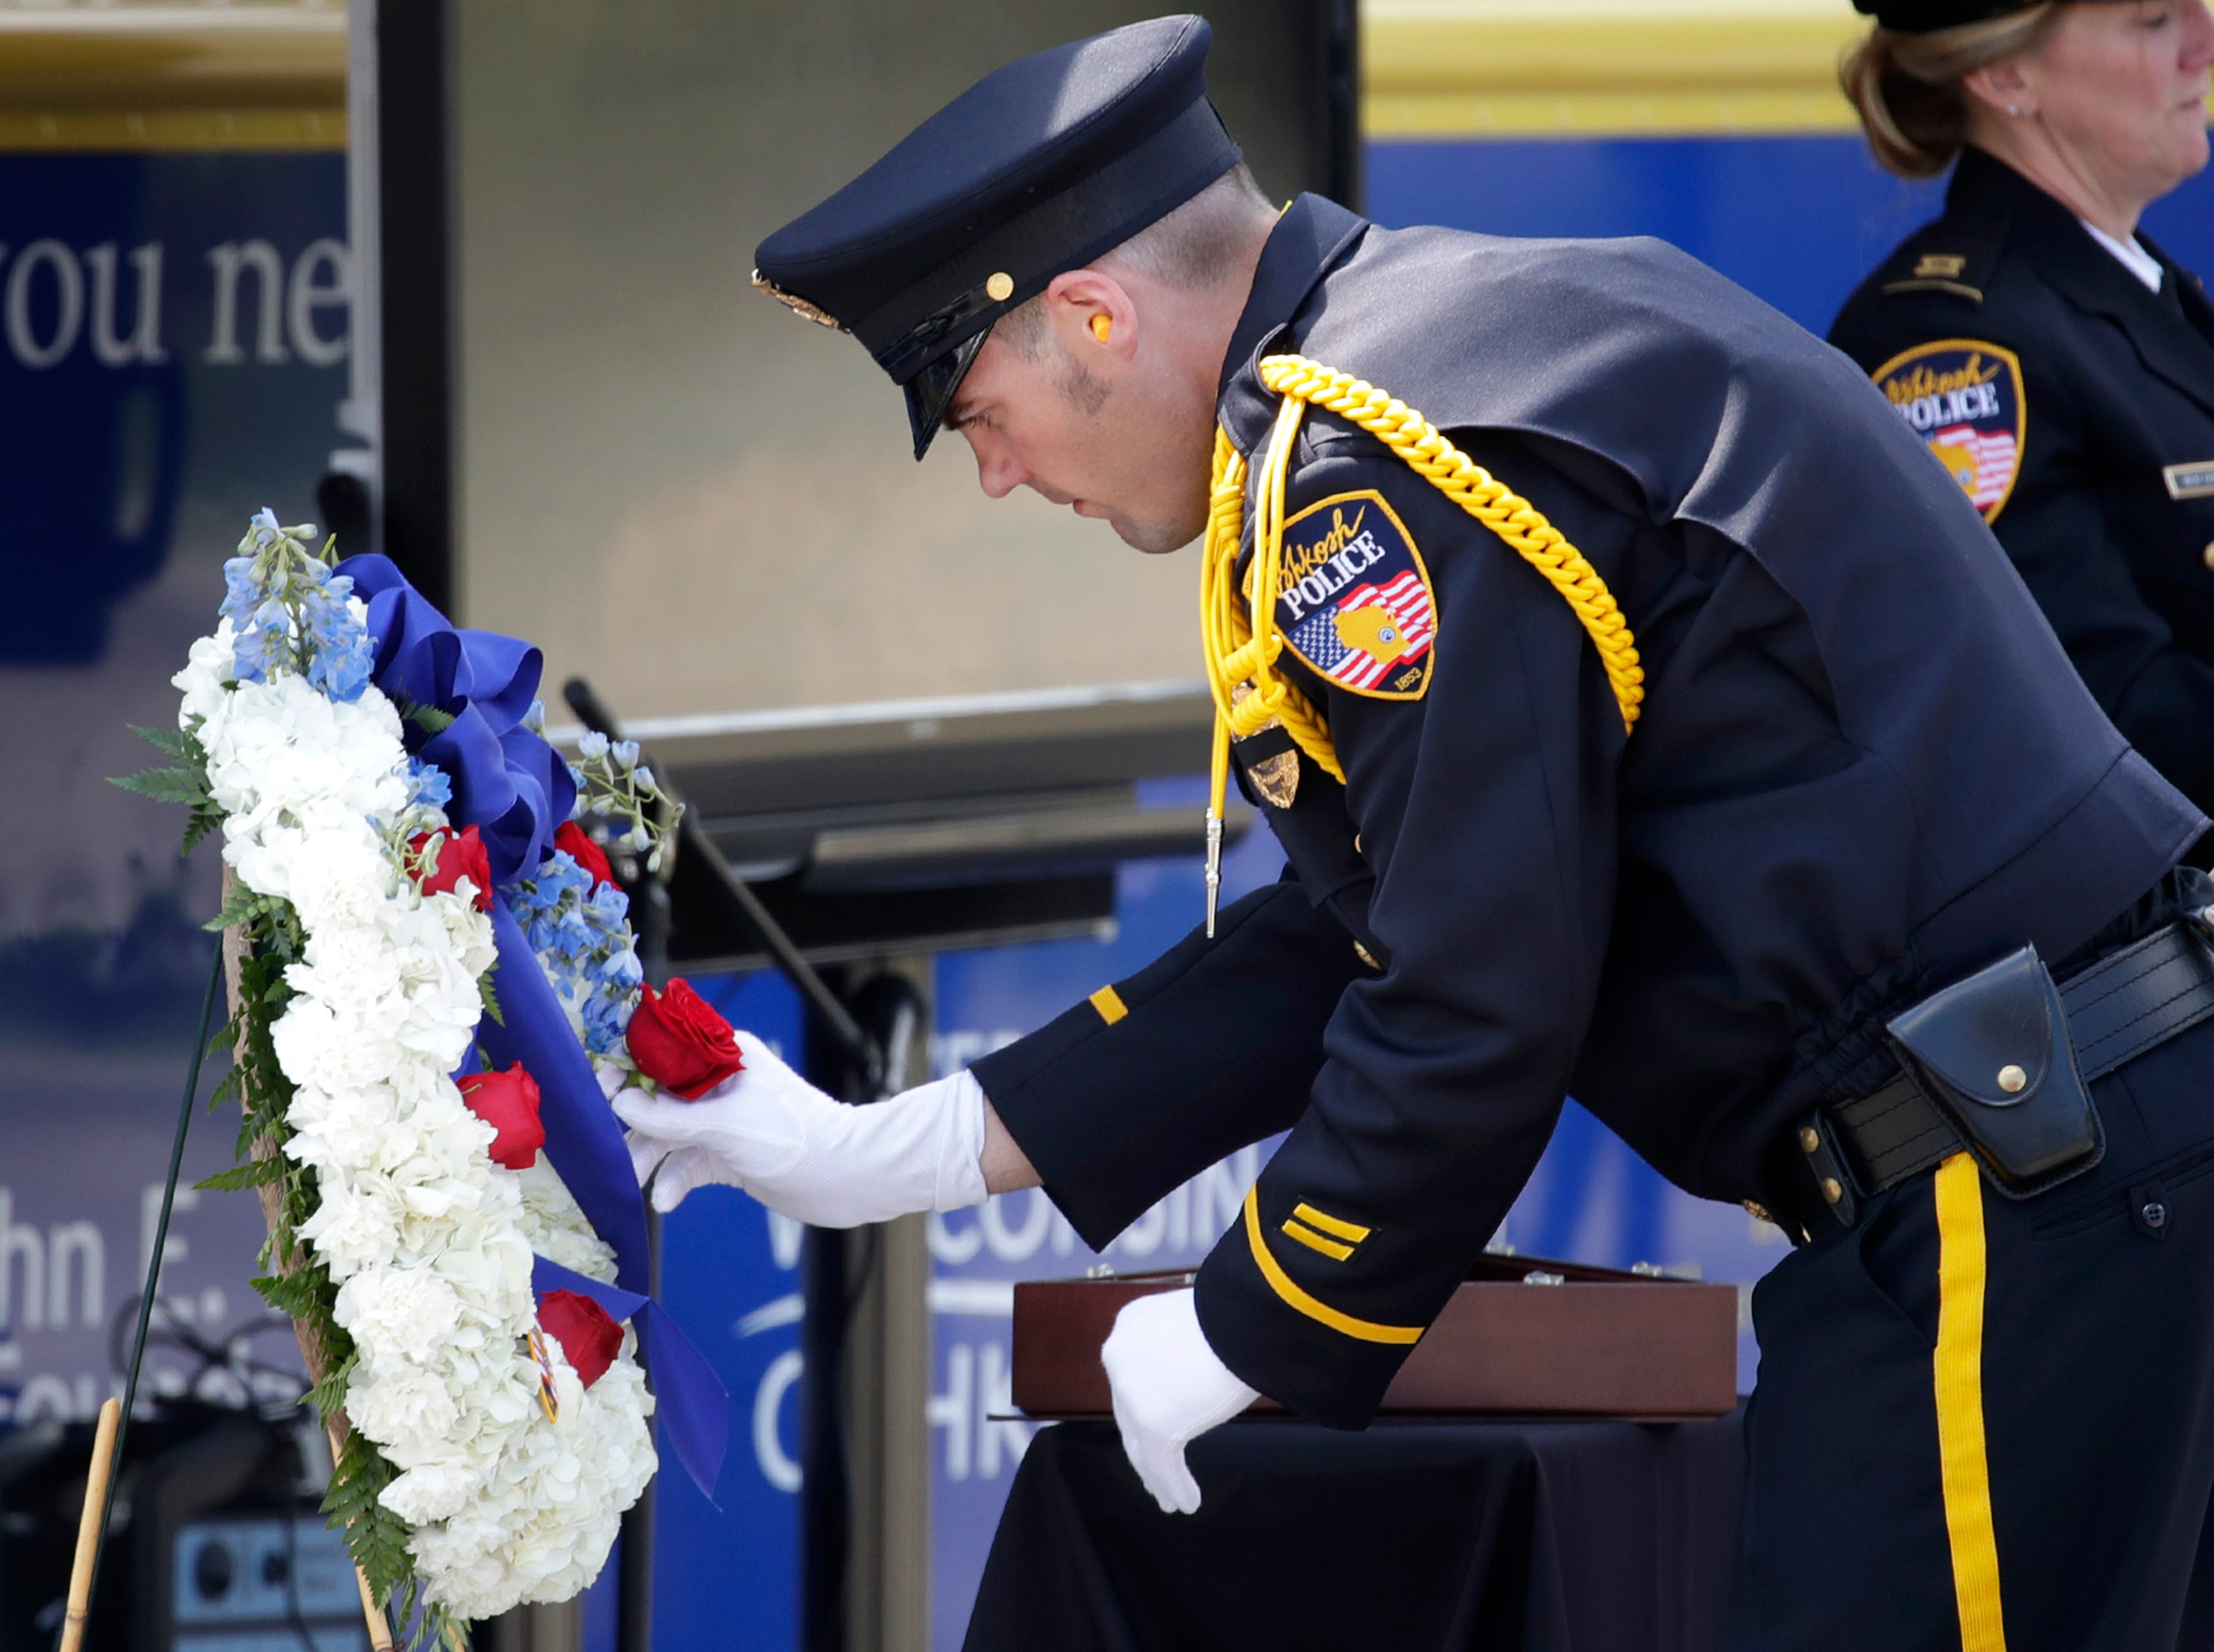 Officer Grant Wilson, with the Oshkosh Police Department, places a rose on a wreath in remembrance of an officer who died while on duty during their Law Enforcement Memorial Ceremony Wednesday, May 15, 2019, at the Oshkosh Police Department in Oshkosh, Wis. Danny Damiani/USA TODAY NETWORK-Wisconsin